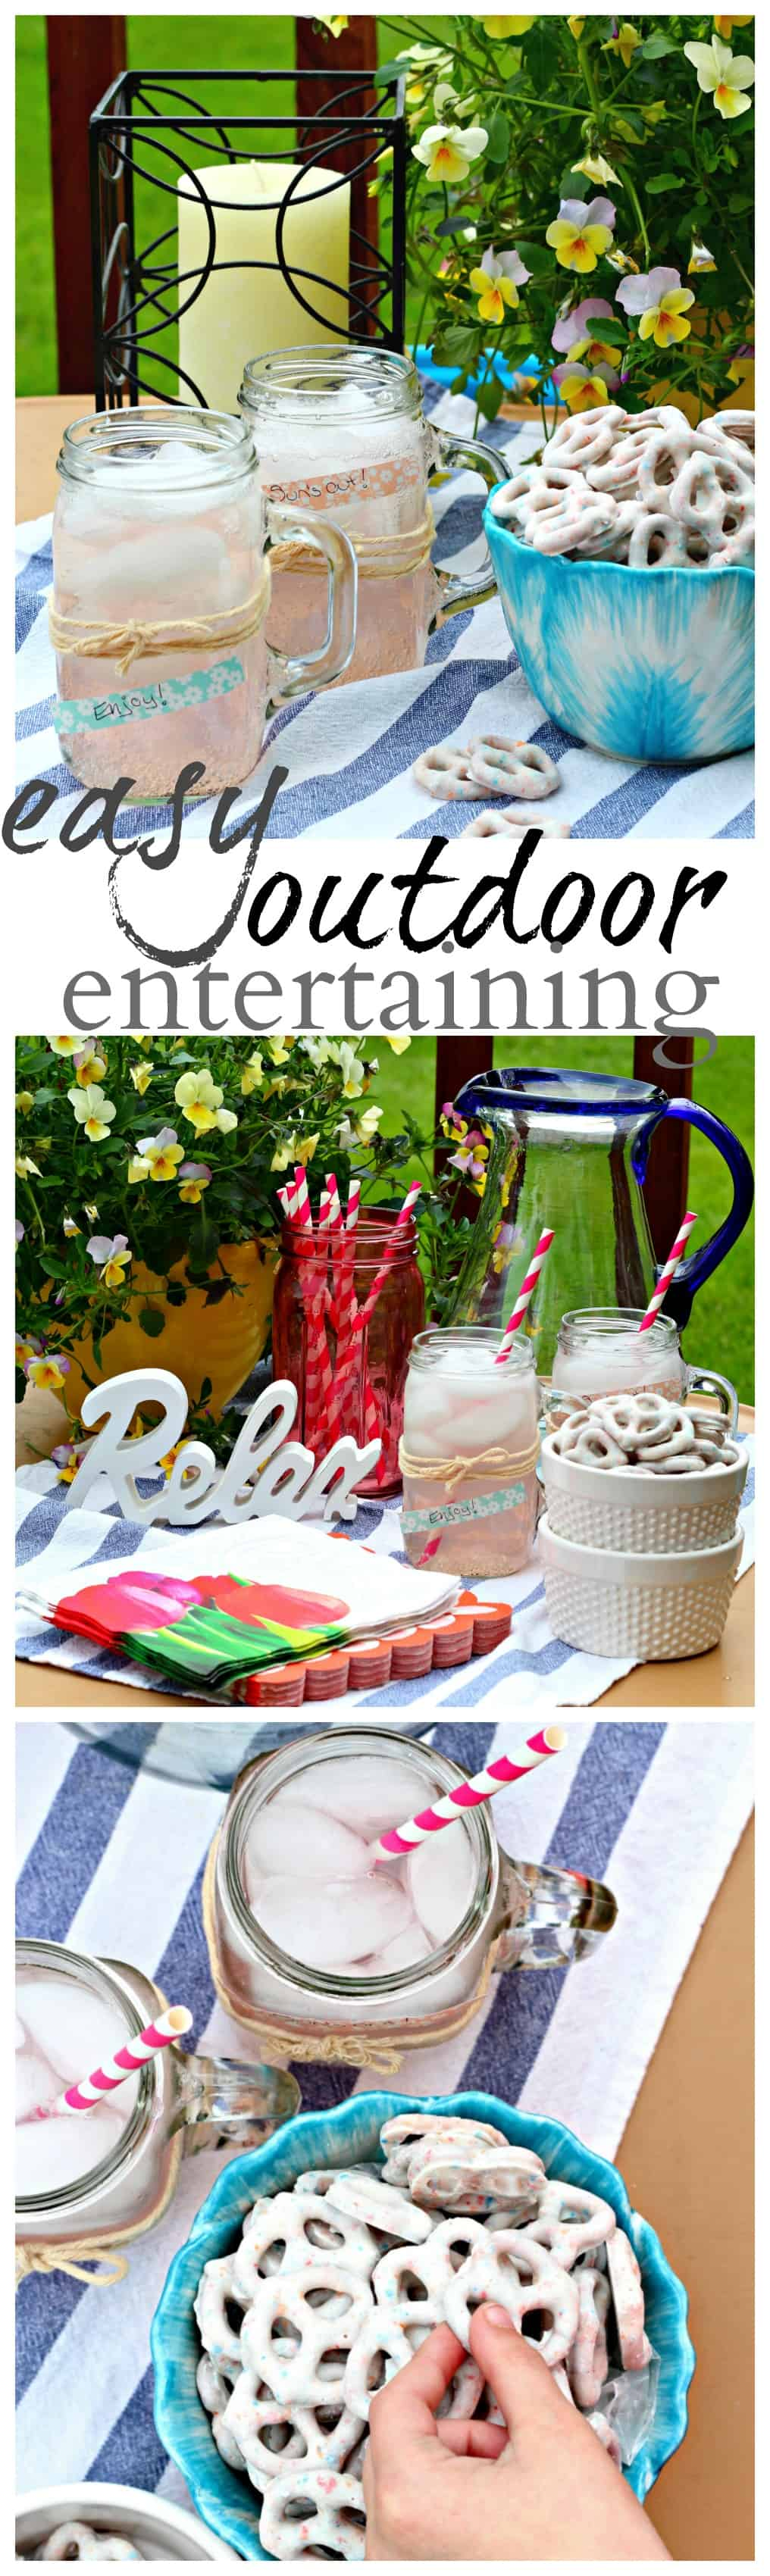 Entertaining Tips Fair Easy Outdoor Entertaining Tips With Flipz®  Life A Little Brighter Review